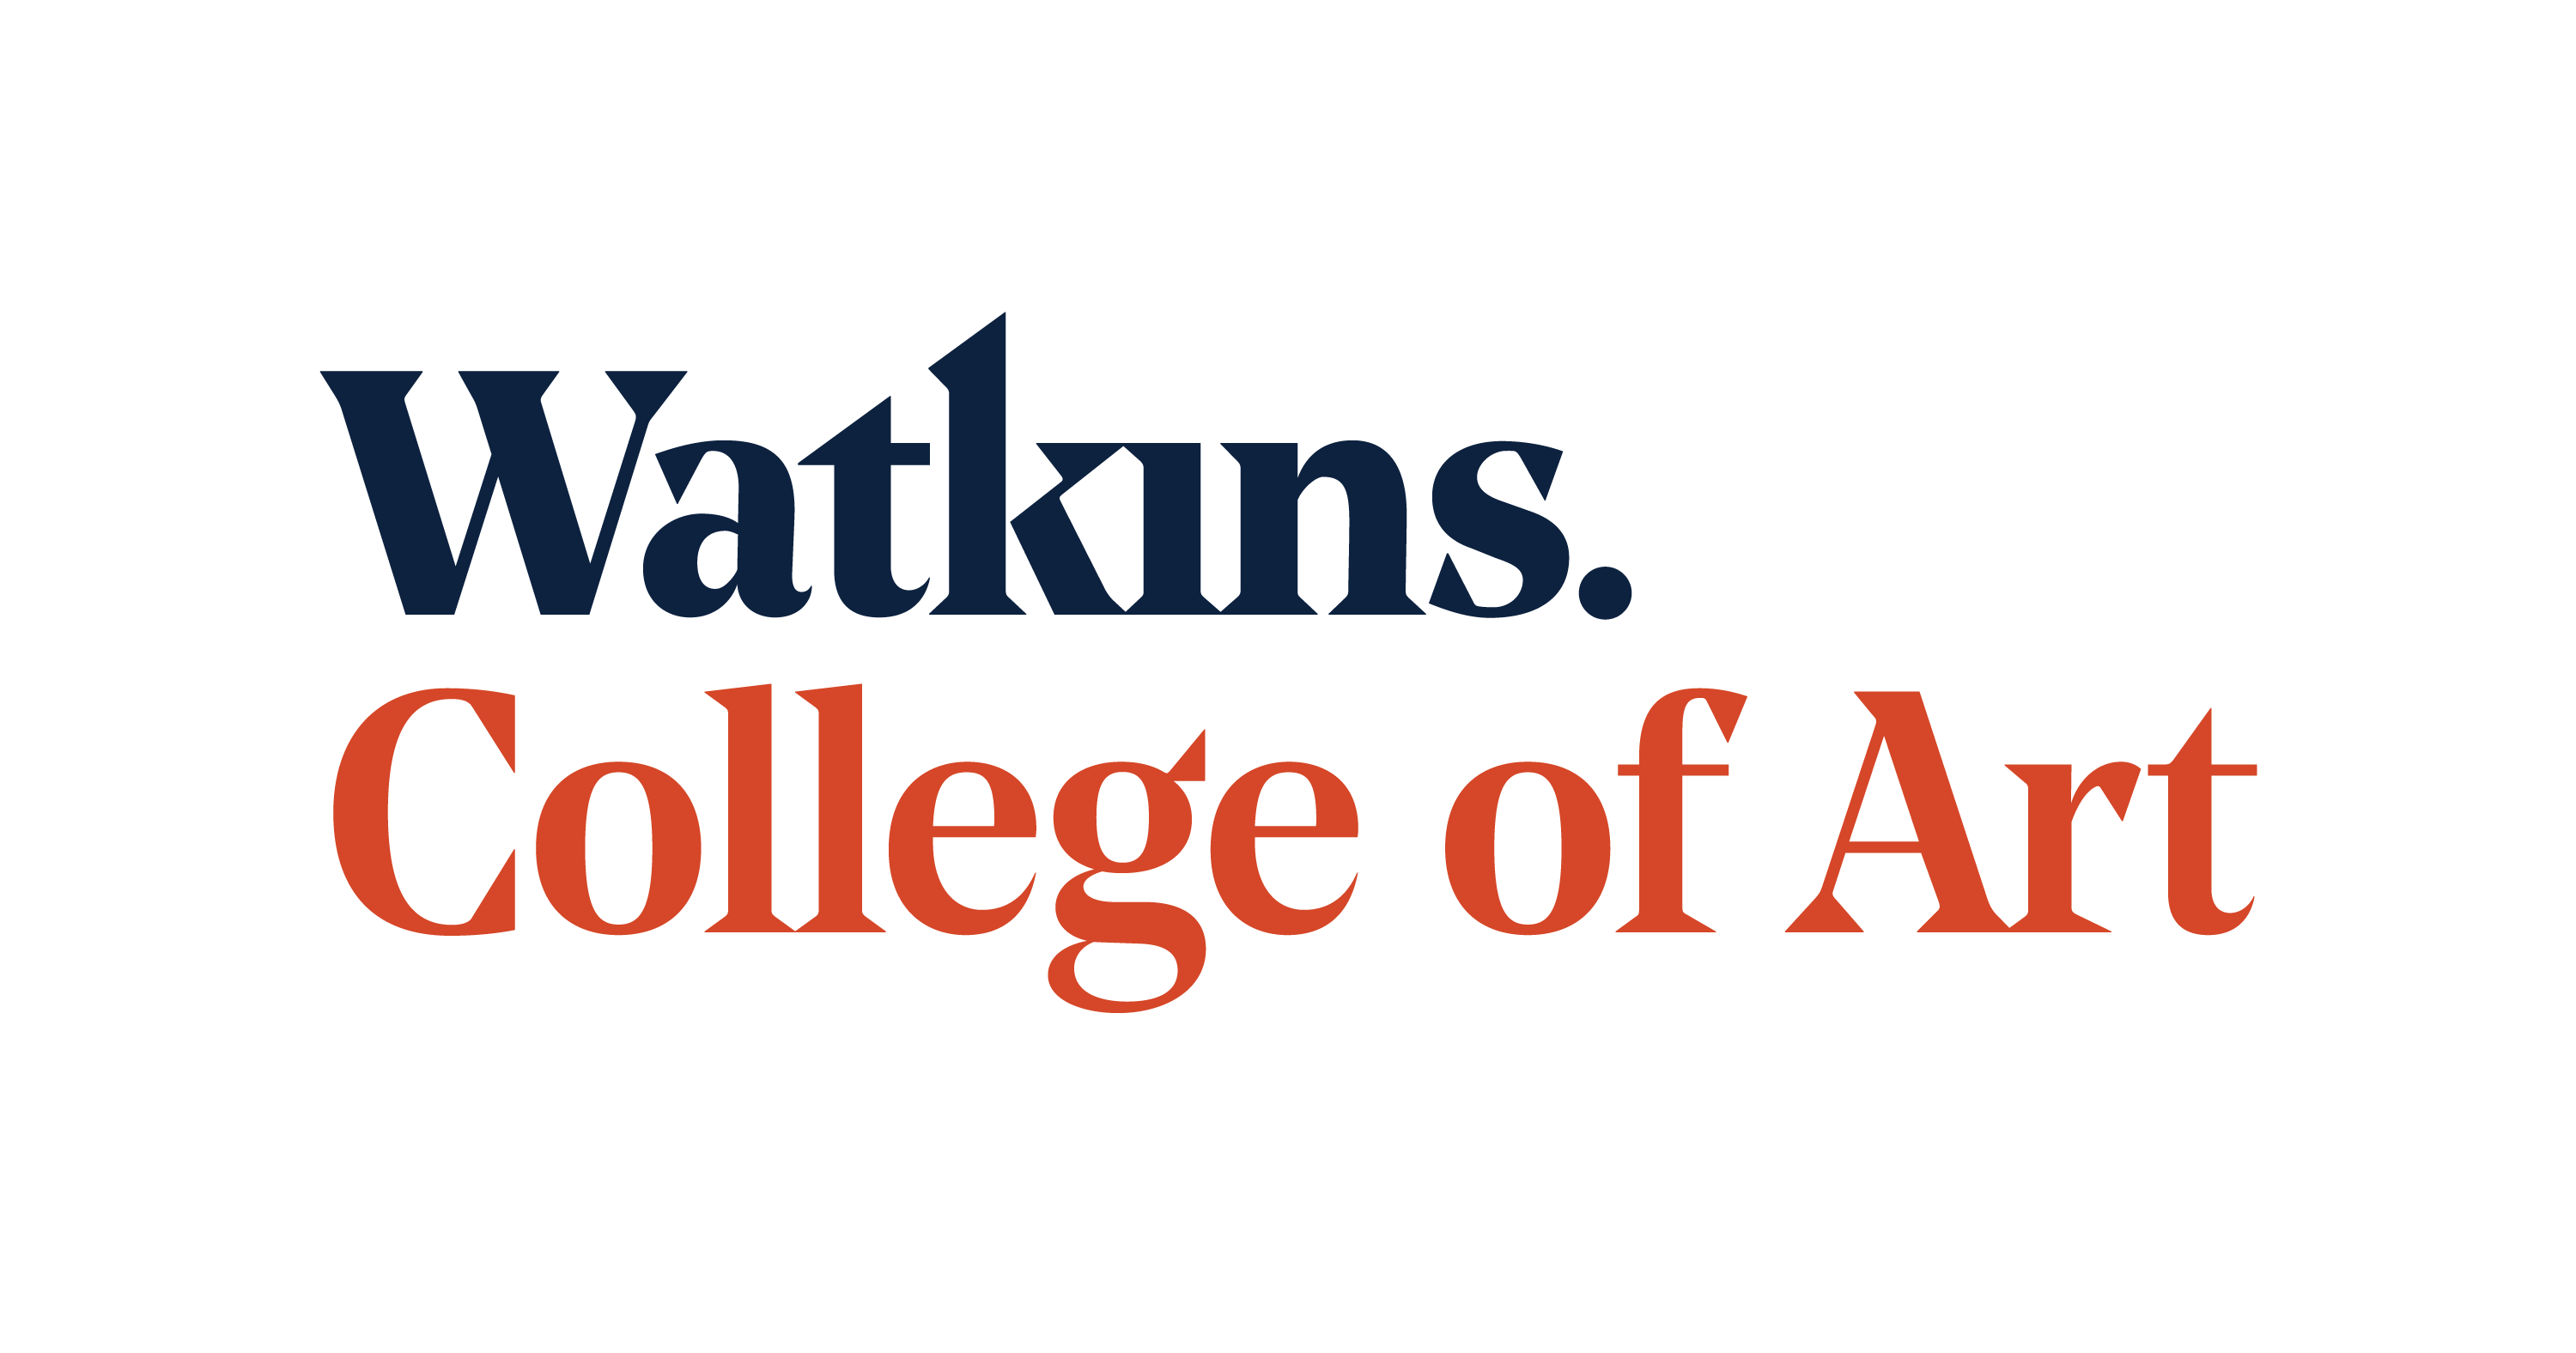 Watkins College of Art, Design & Film